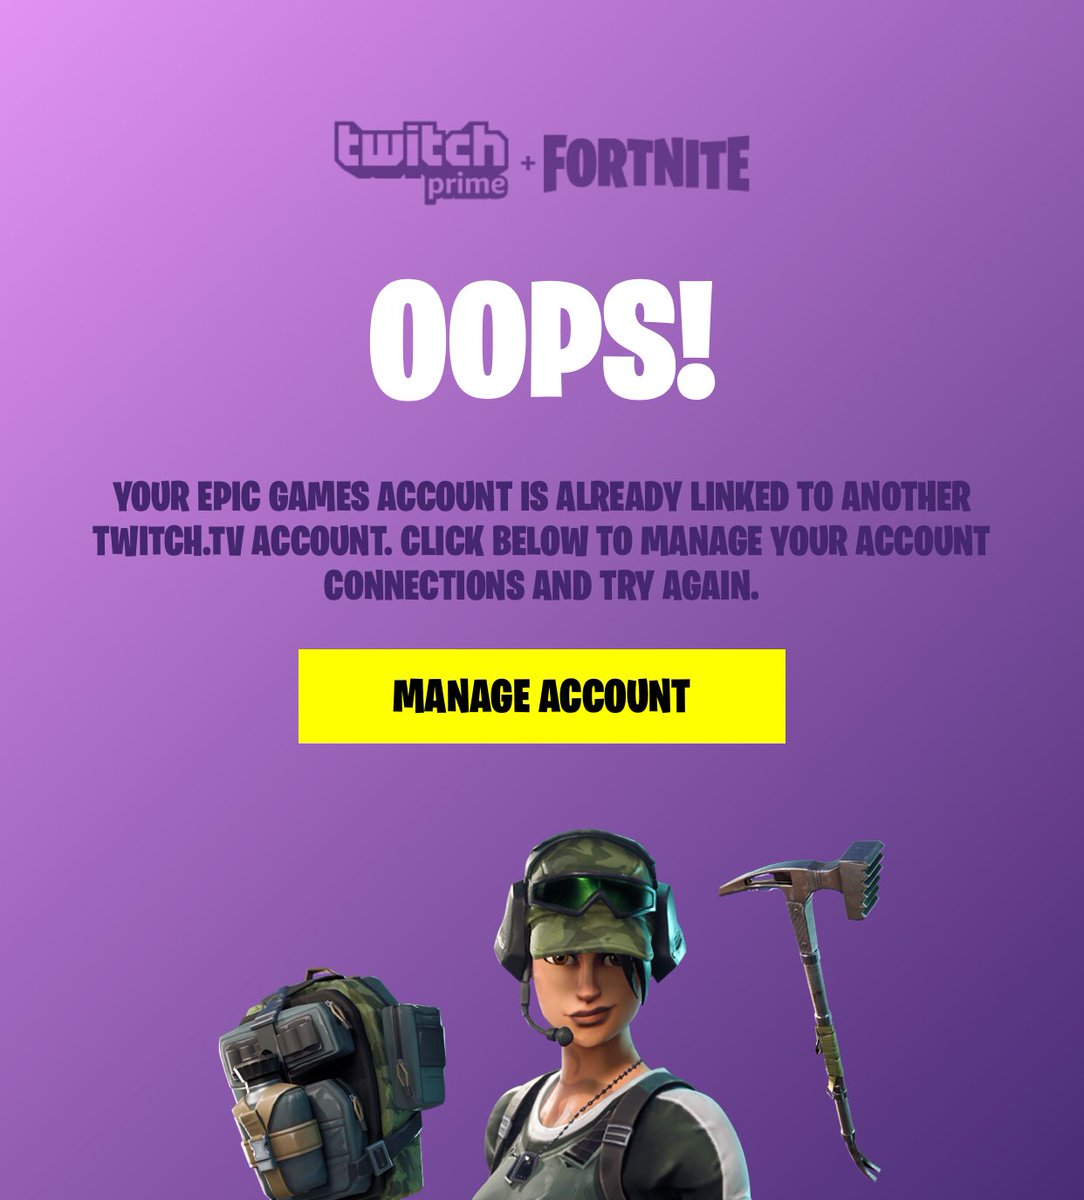 Twitch Prime on Twitter: